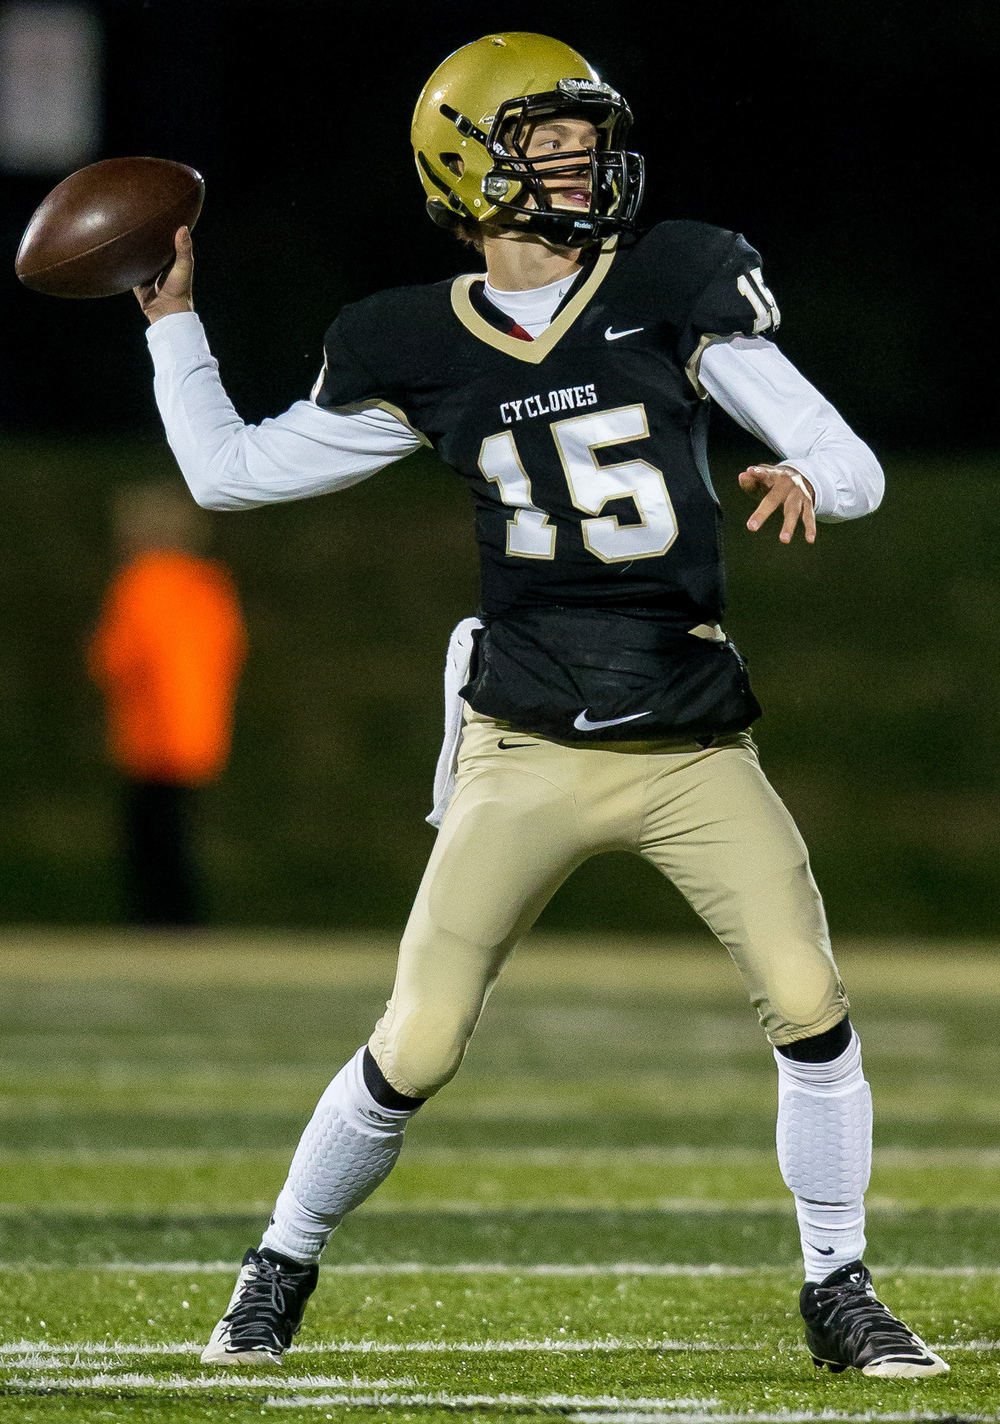 Sacred Heart-Griffin quarterback Tim Brenneisen (15) drops back for a pass against Palos Heights Shepard in the third quarter during the first round of the Class 6A playoffs at the Sacred Heart-Griffin Sports Complex, Friday, Oct. 30, 2015, in Springfield, Ill. Justin L. Fowler/The State Journal-Register